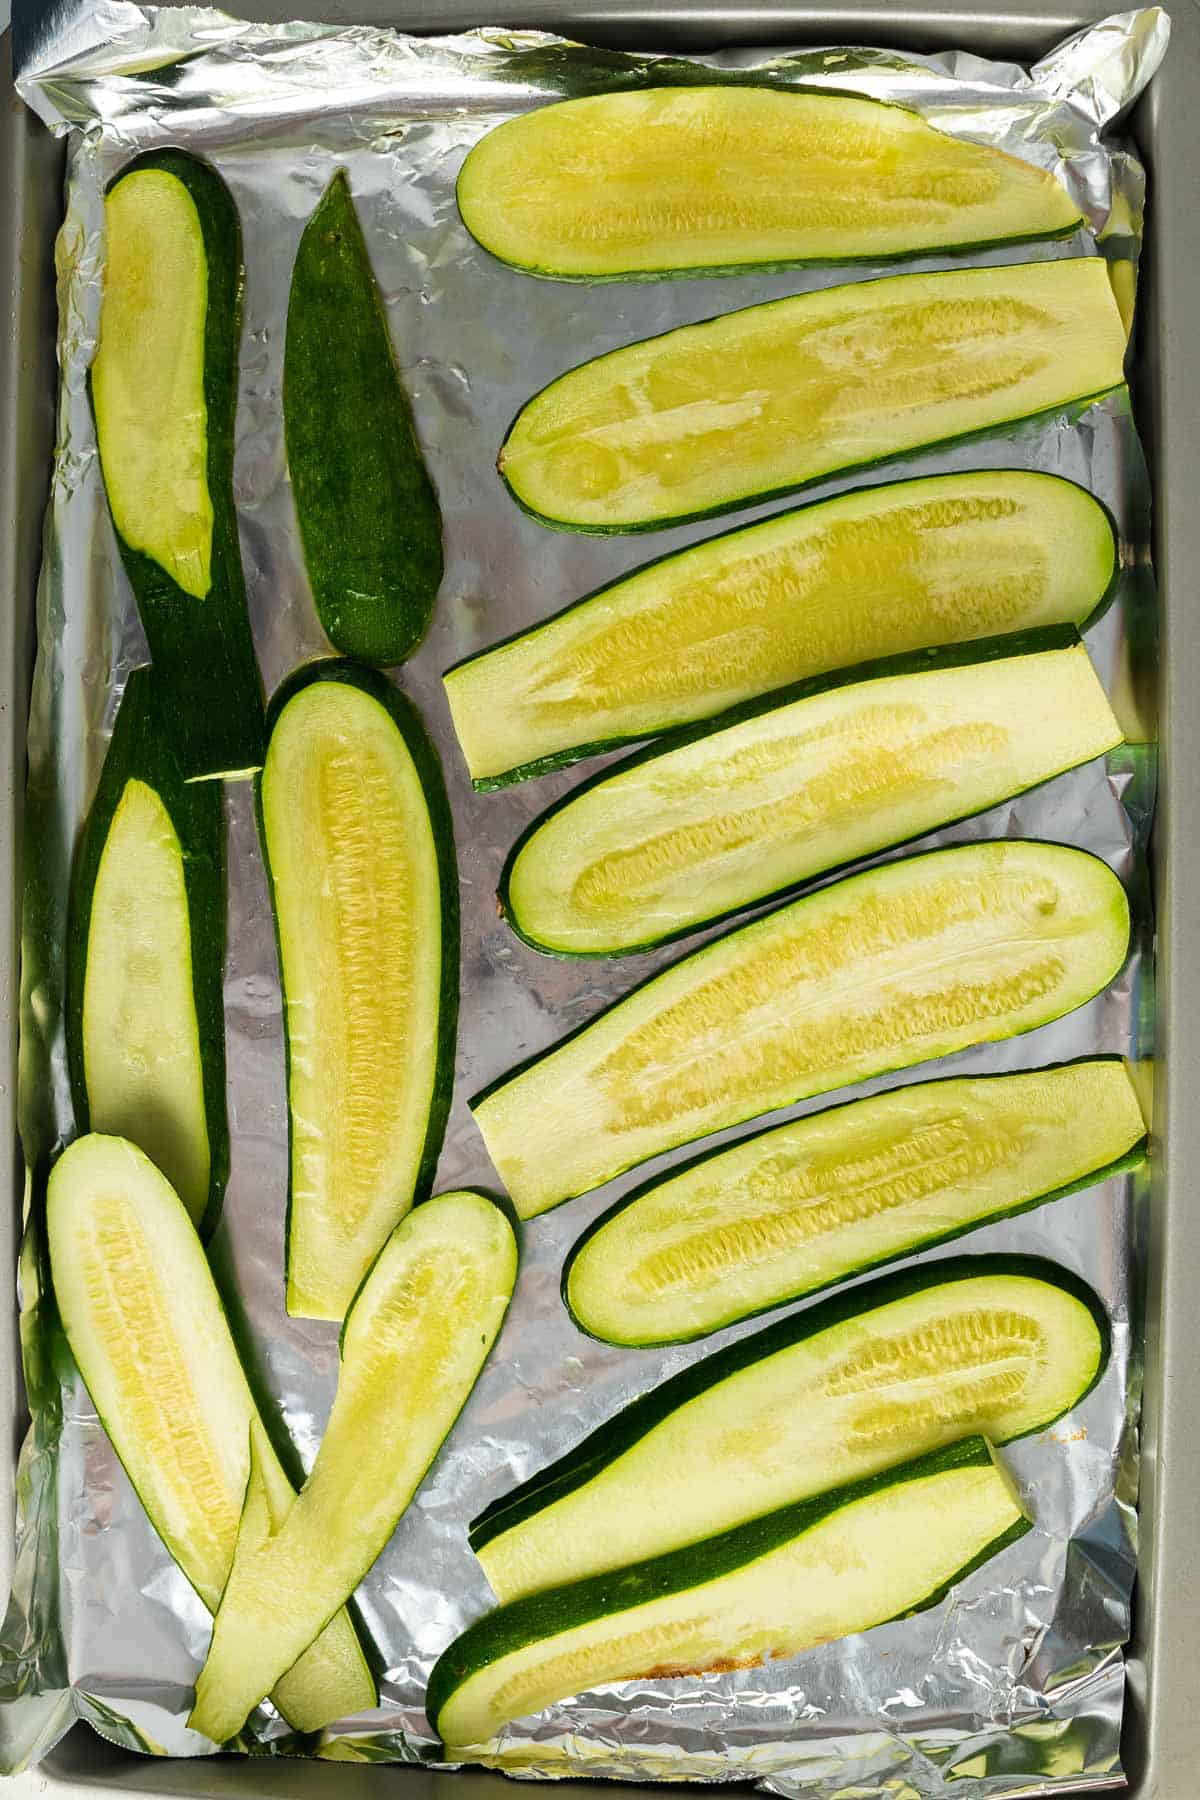 Cooked zucchini slices on a baking sheet lined with foil, as seen from above